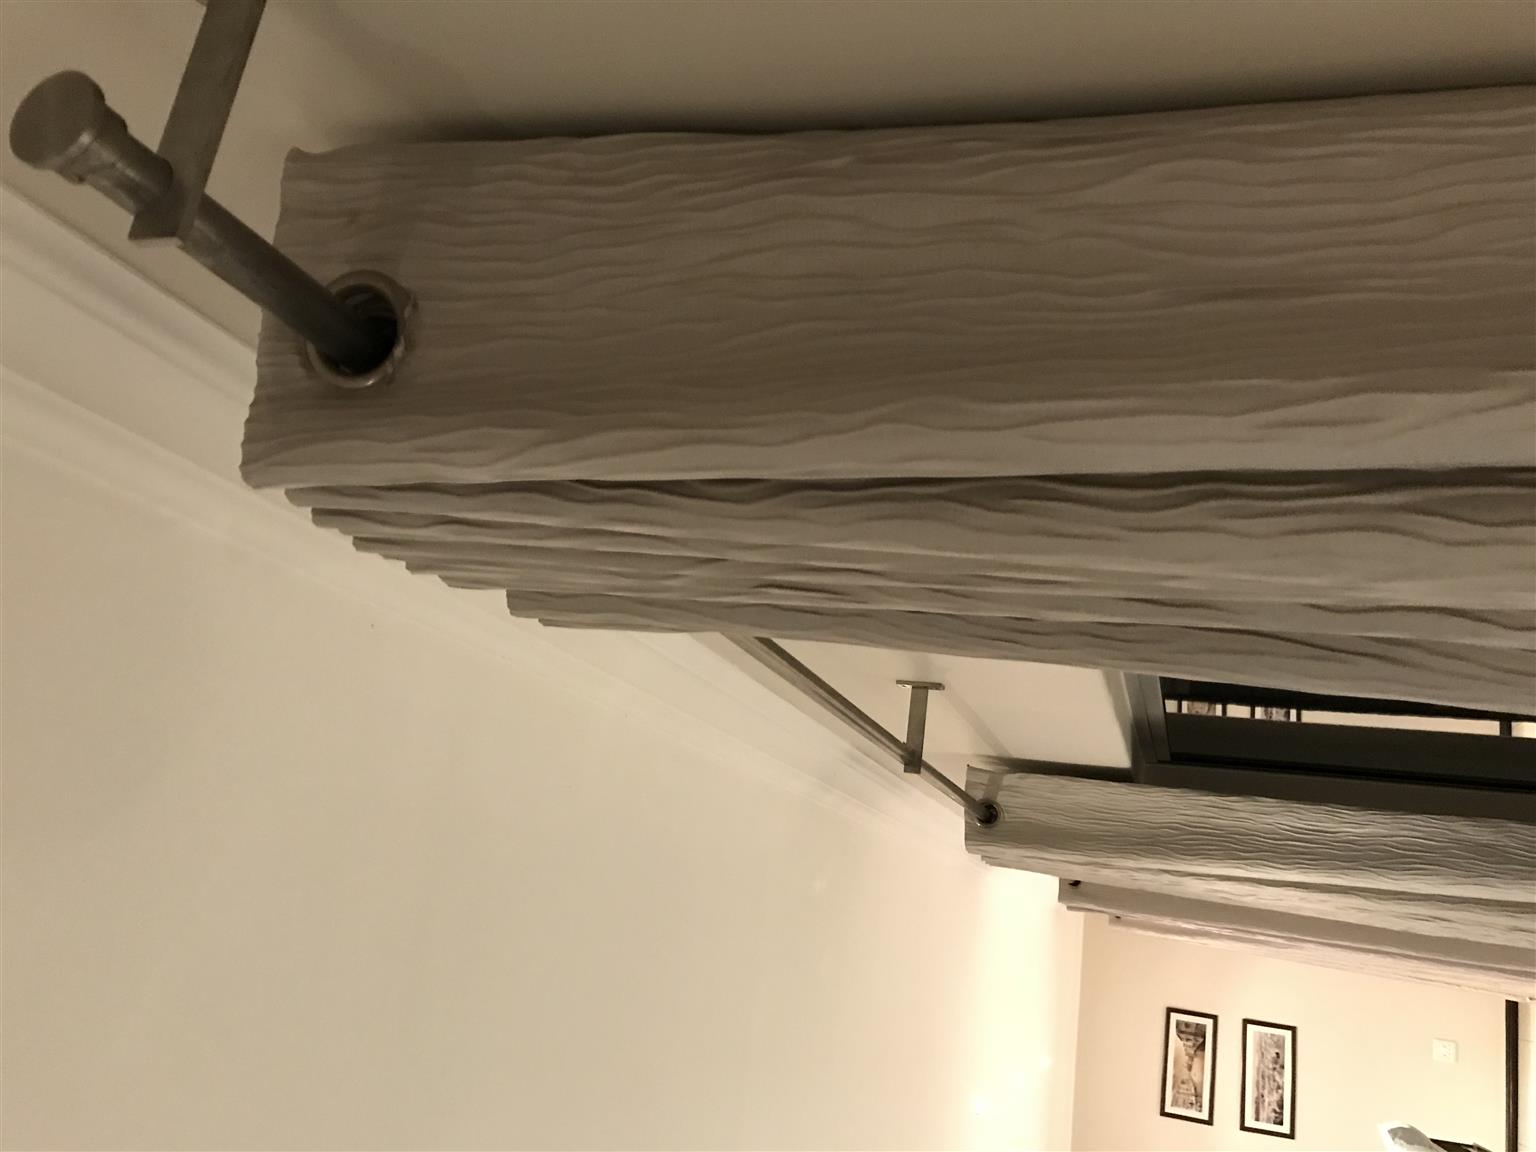 4xDesign House lined curtains 280 drop x 180 cm when drawn closed with additional length